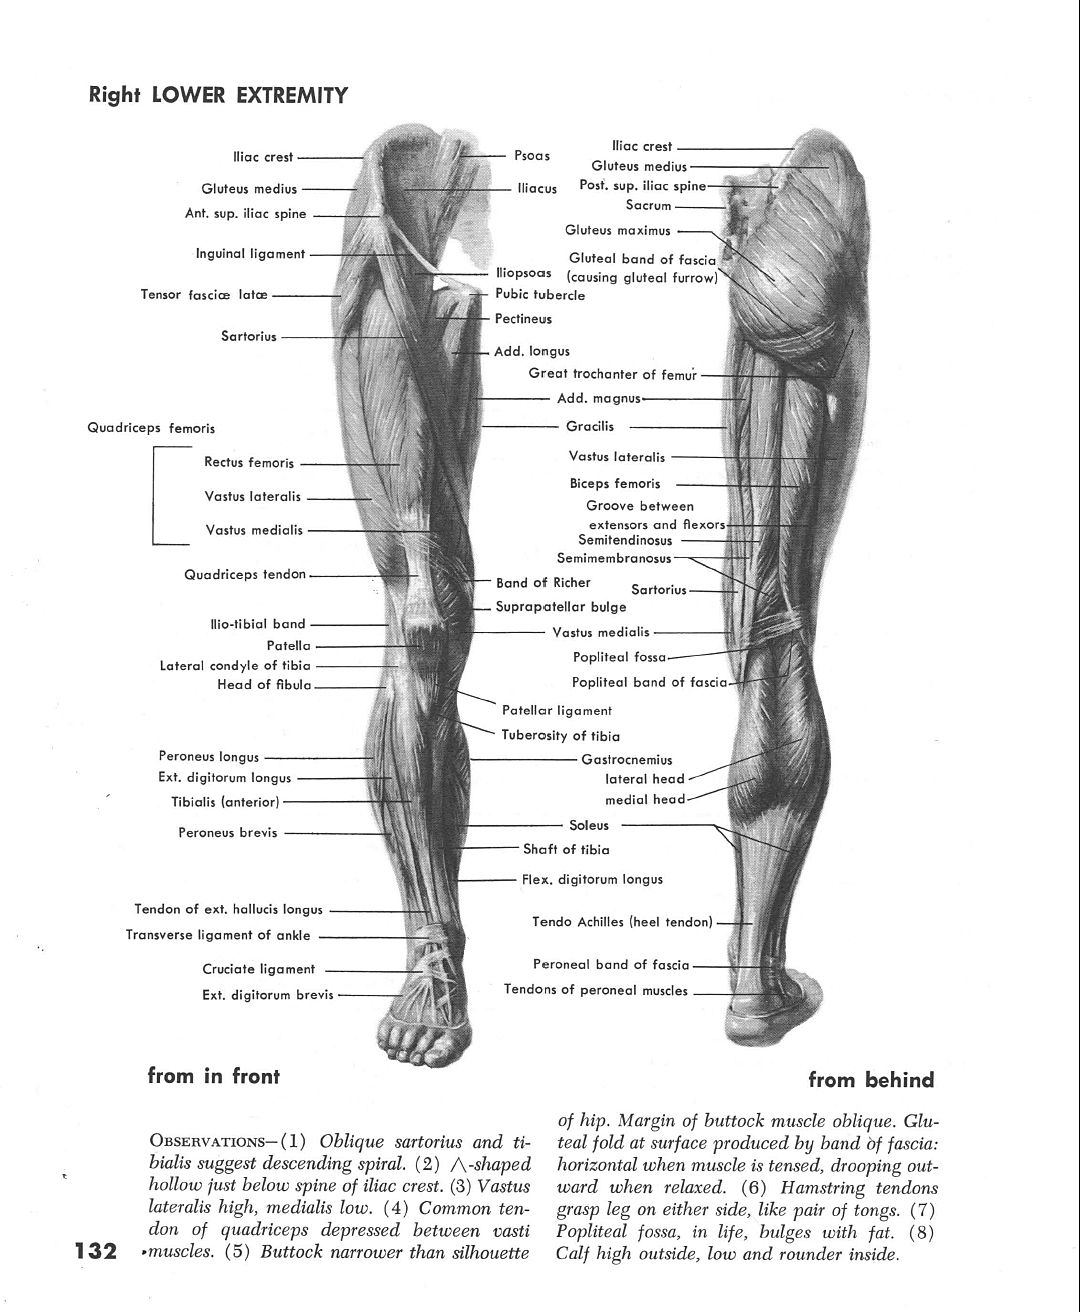 Muscles of Right Leg Front & Back | рисунок, скульптура | Pinterest ...